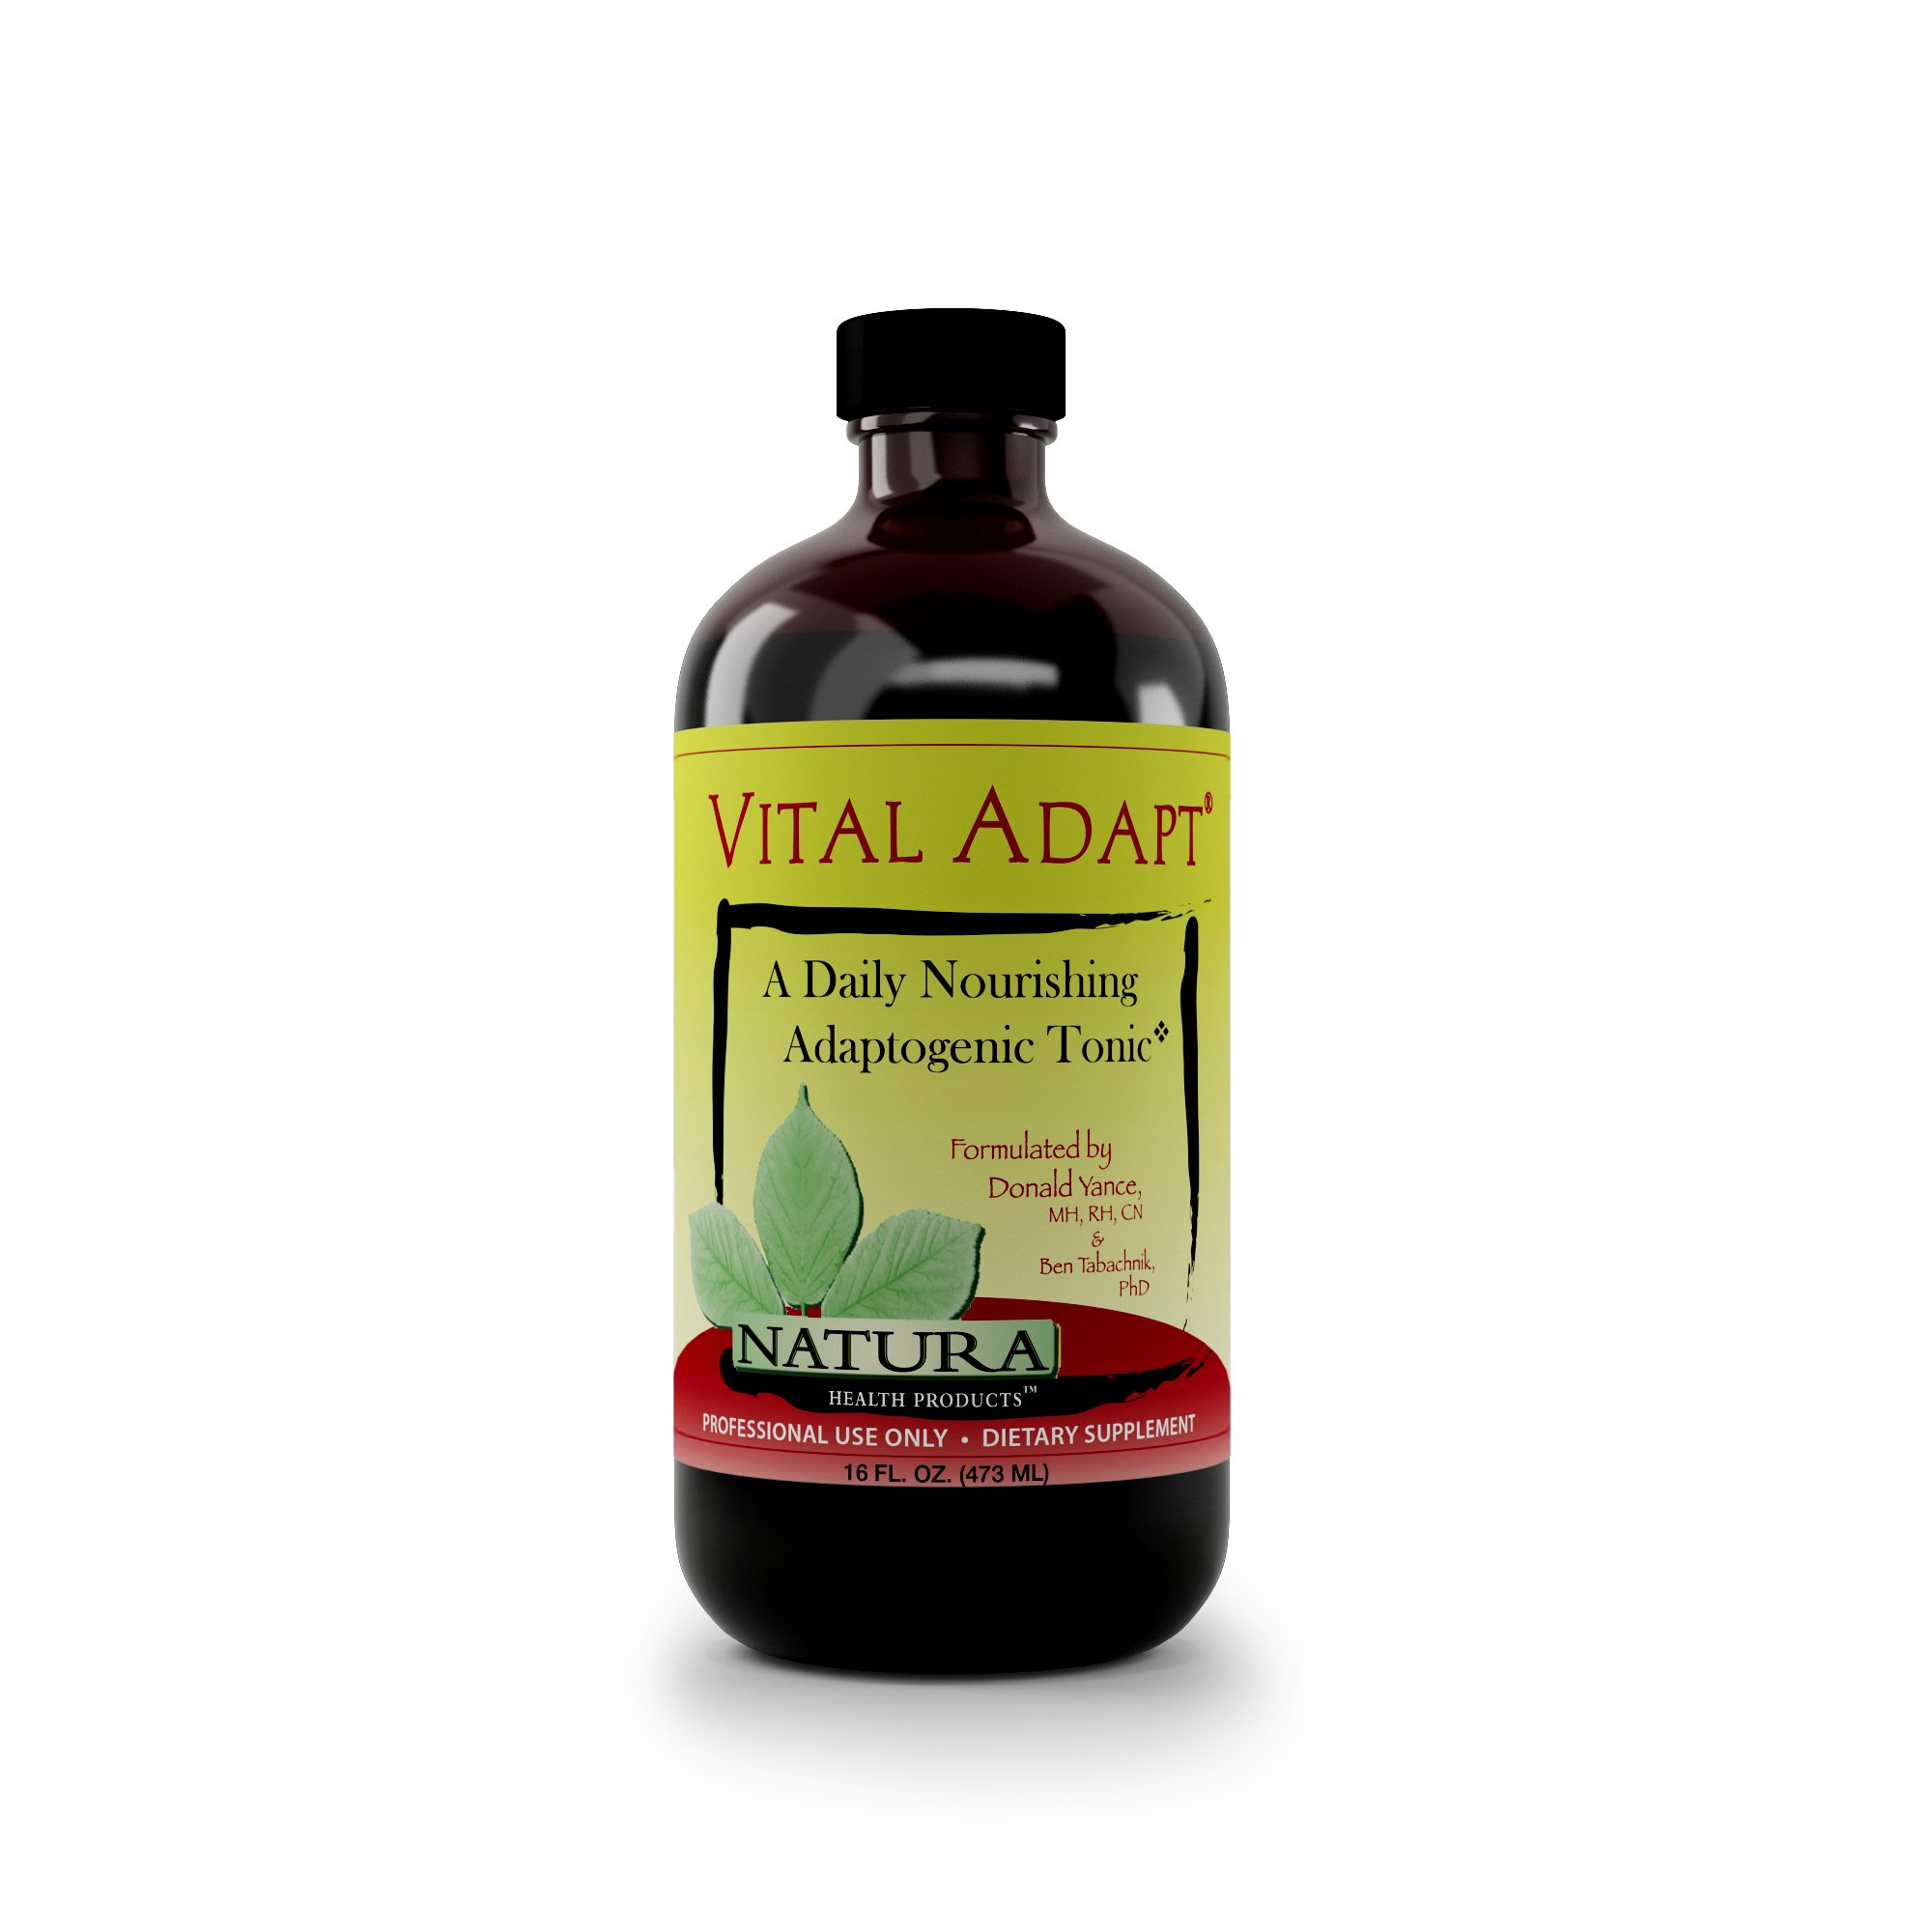 Vital Adapt Adrenal Support and Cortisol Support Manager Supplement by Natura Health Products - Natural Stress and Fatigue Relief with Ashwagandha and Rhodiola - 16 Fluid Ounces